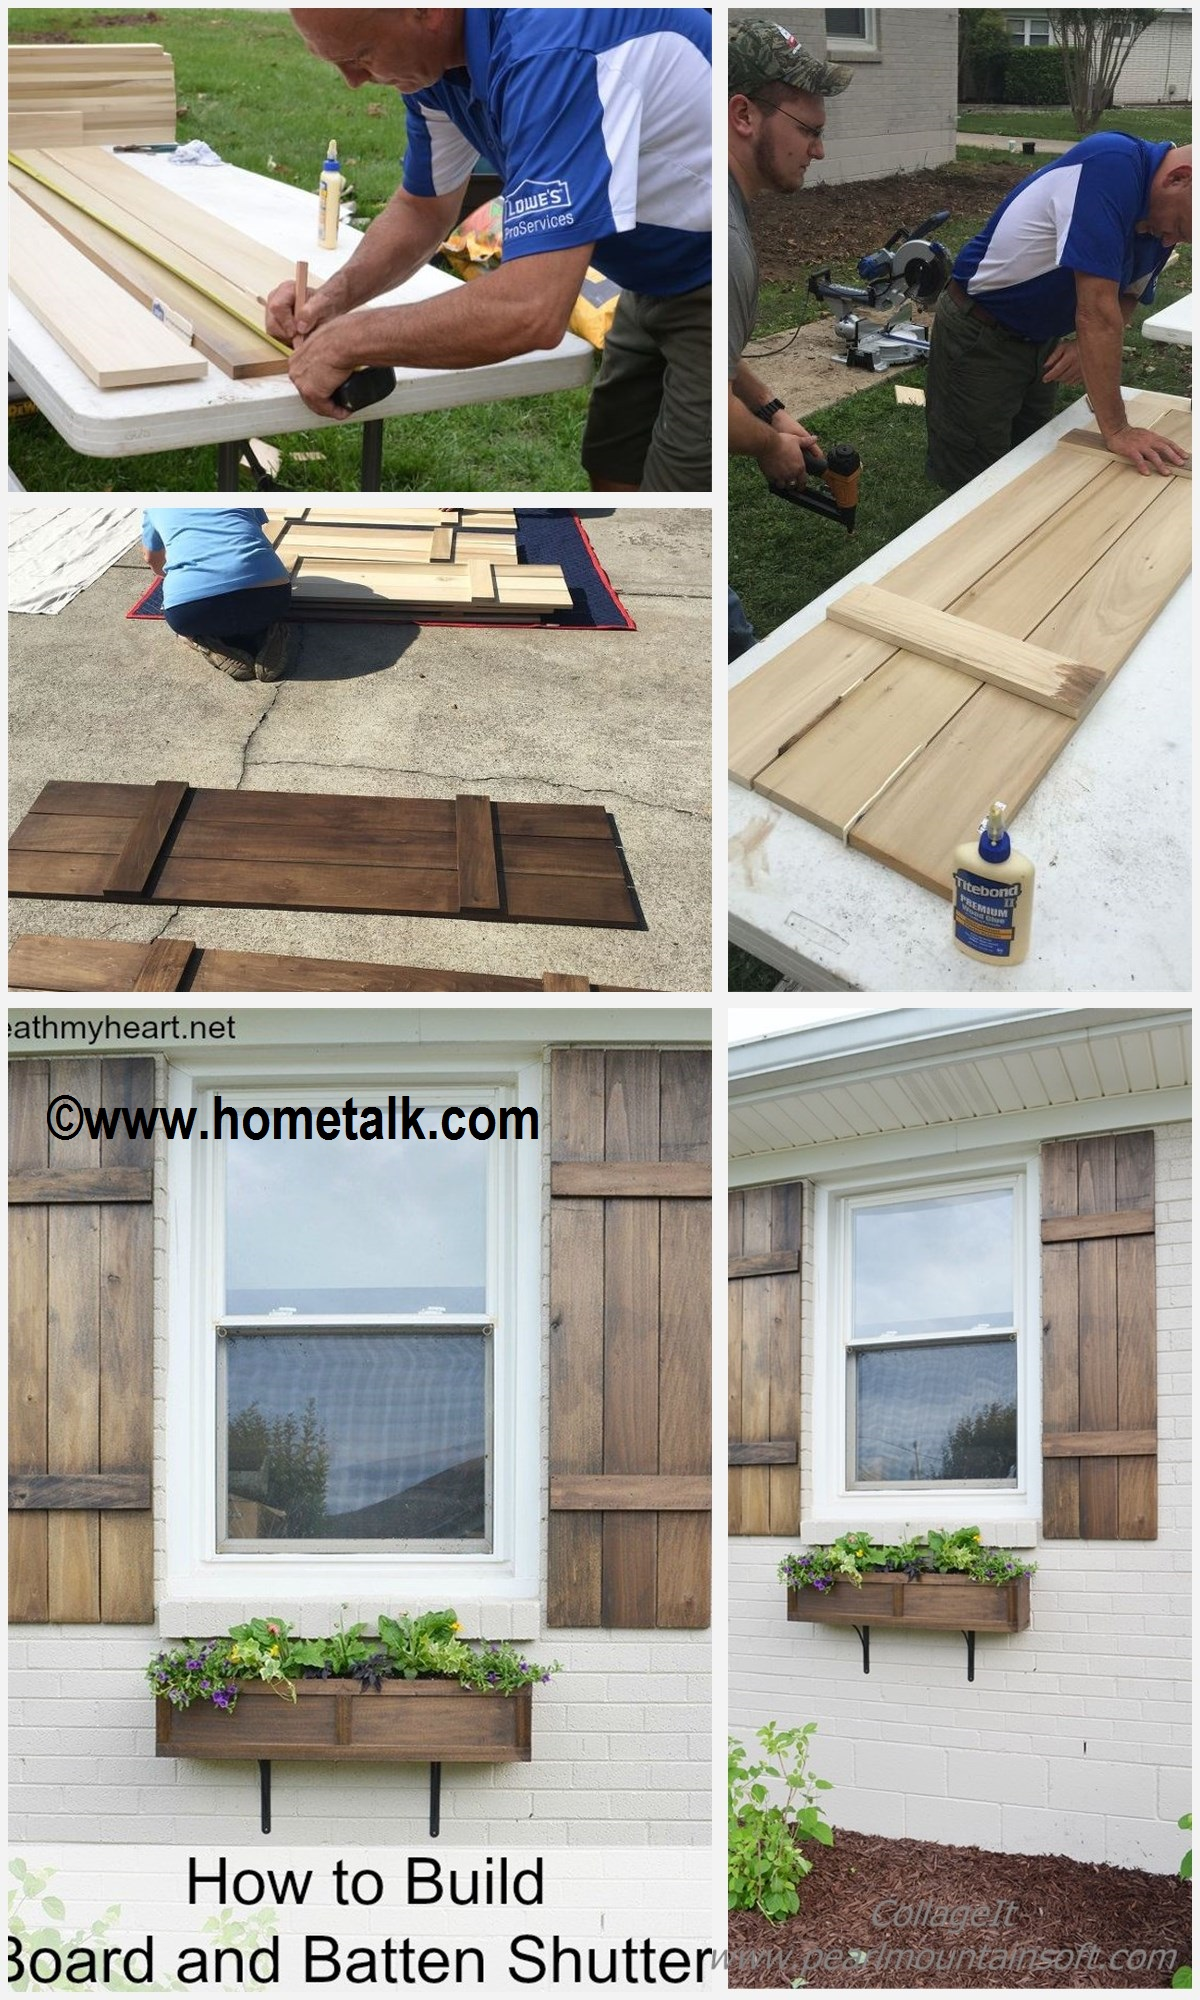 How to make Board and Butten Shutters